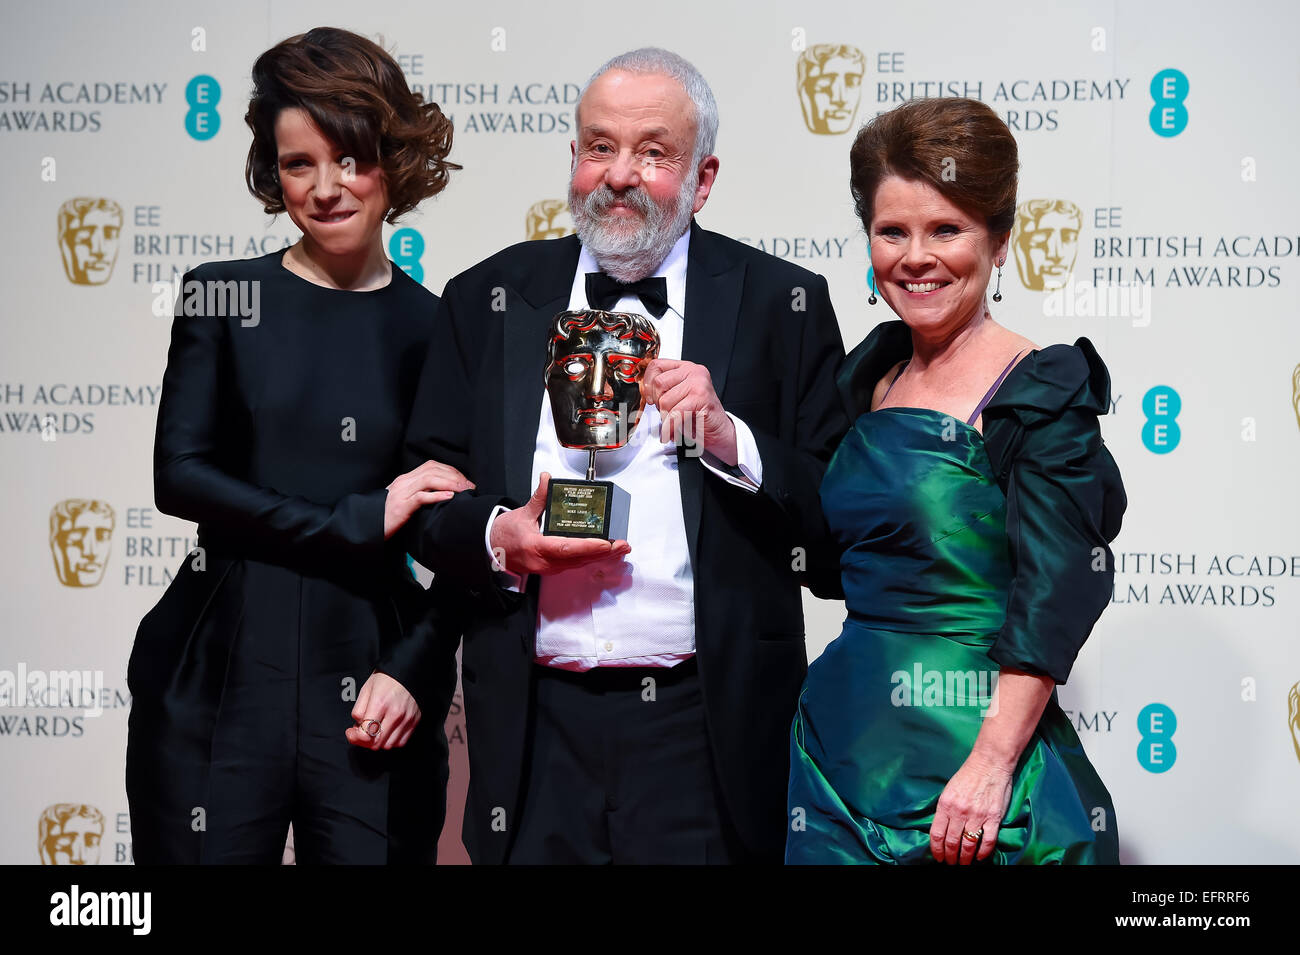 Sally Hawkins, Imelda Staunton and Mike Leigh at the EE British Academy Film Awards at The Royal Opera House on - Stock Image